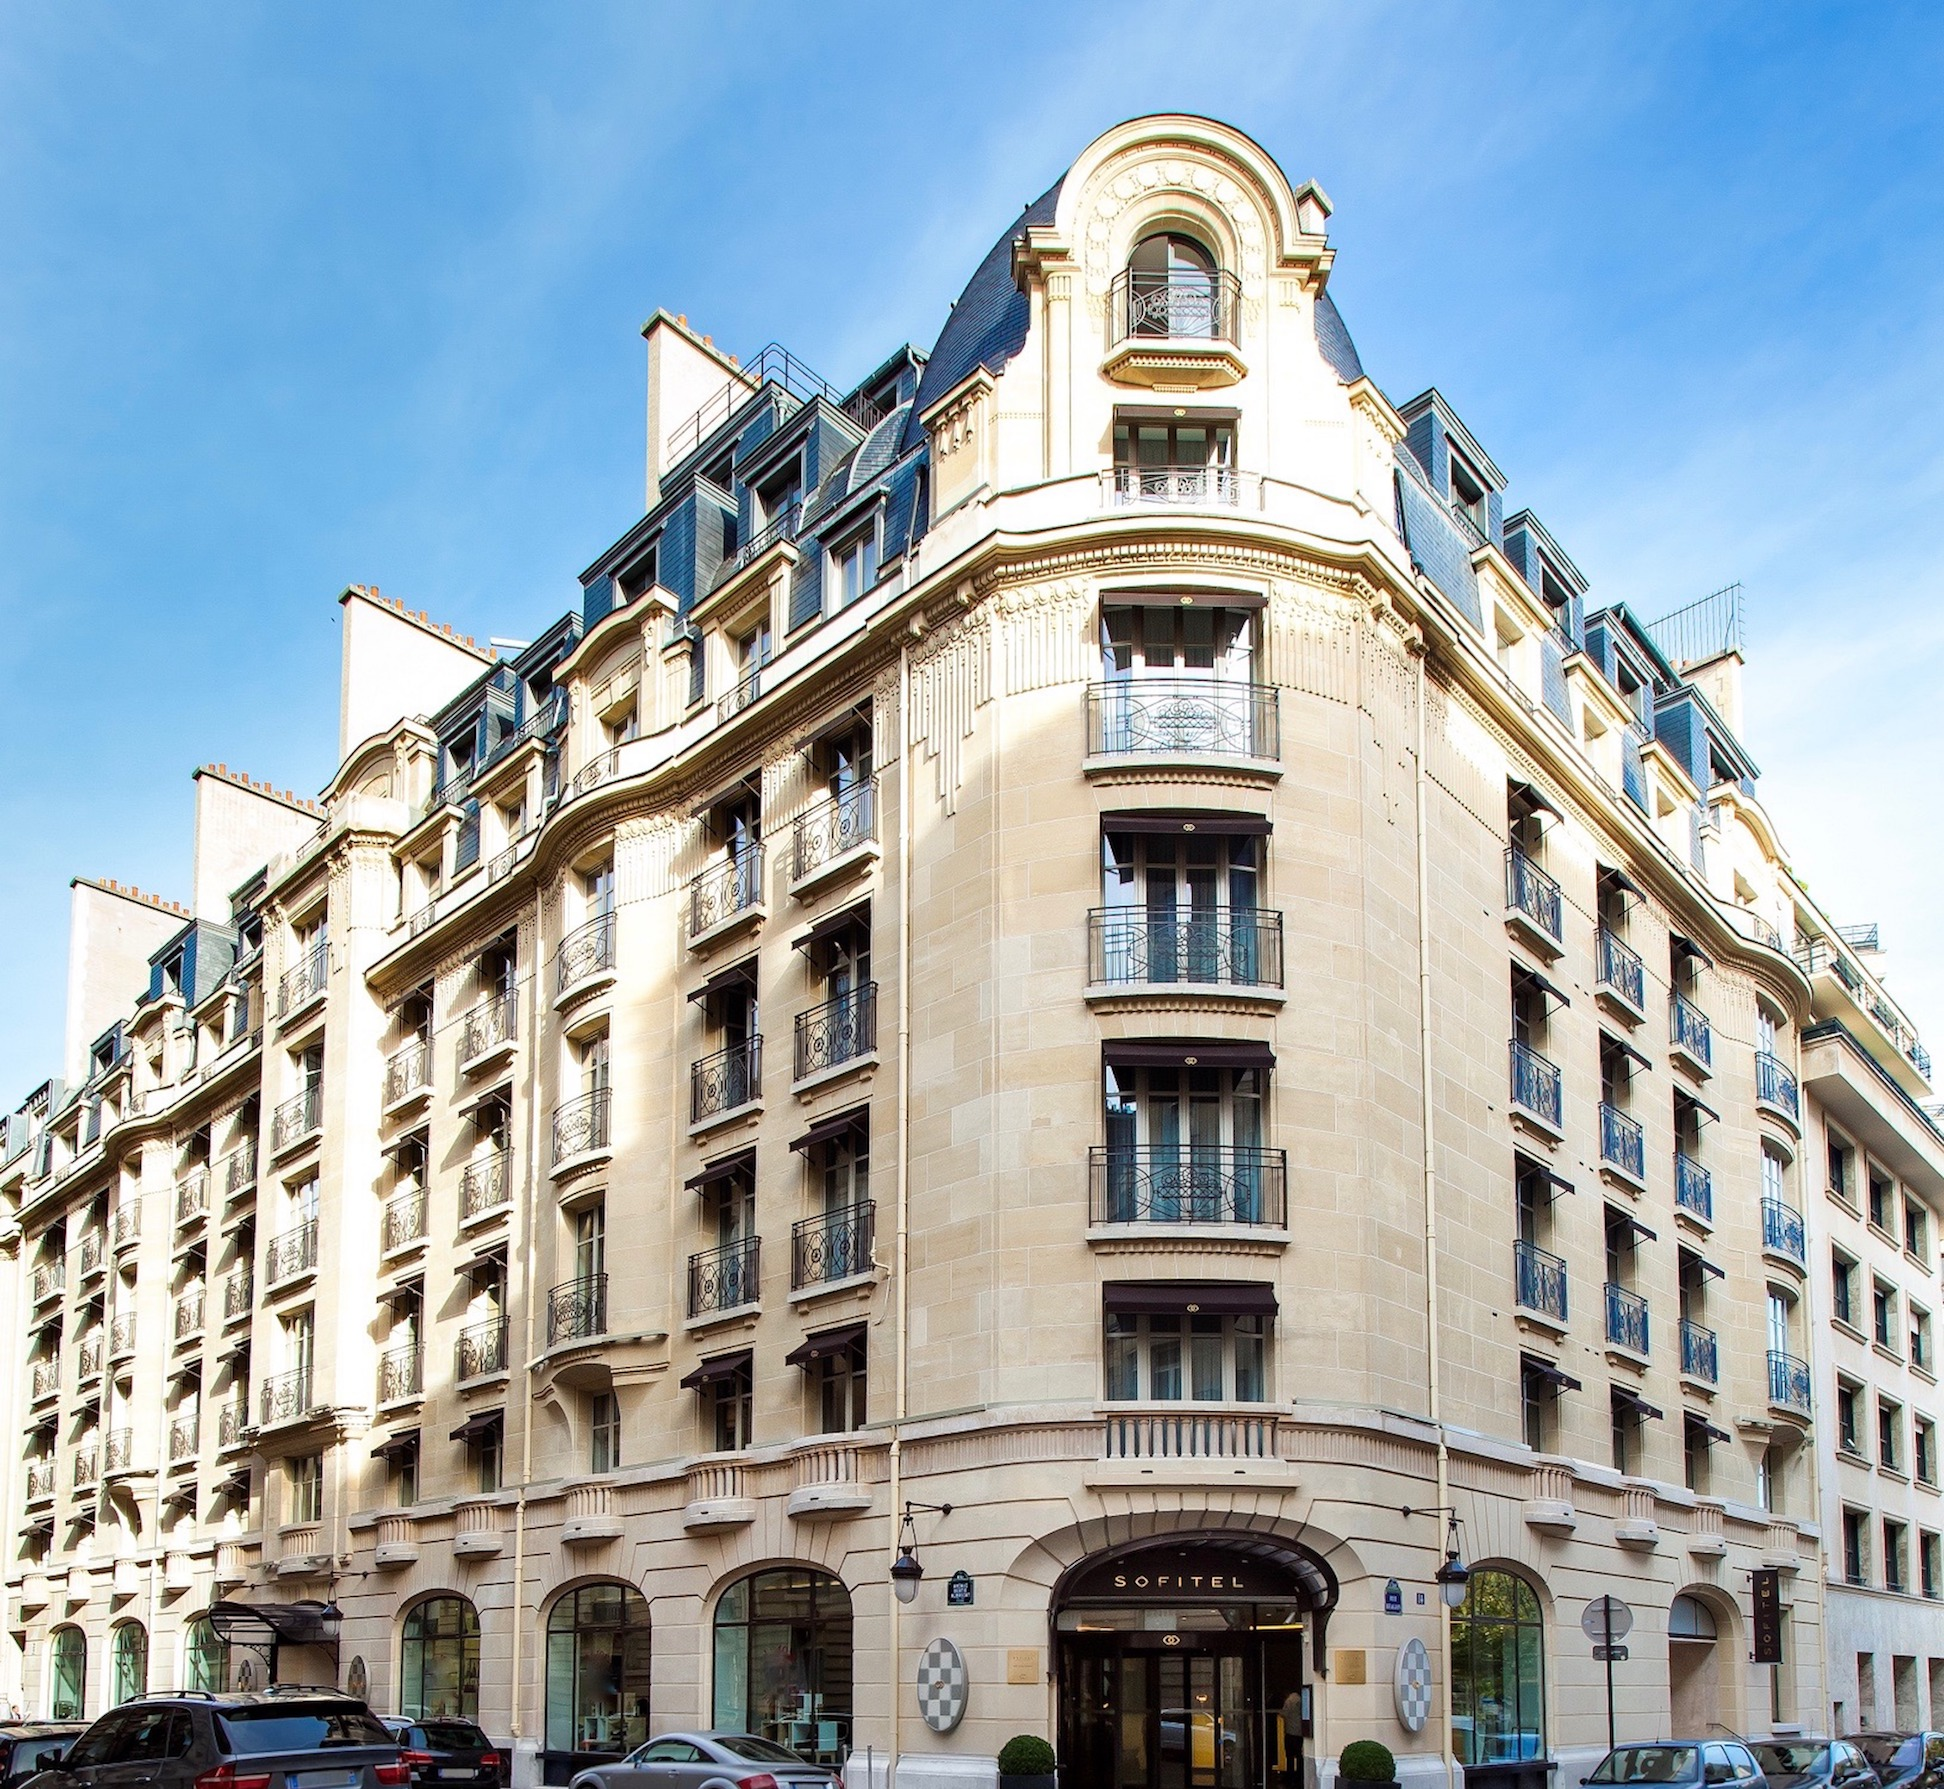 sofitel-arc-de-triomphe-paris-lustforthesublime